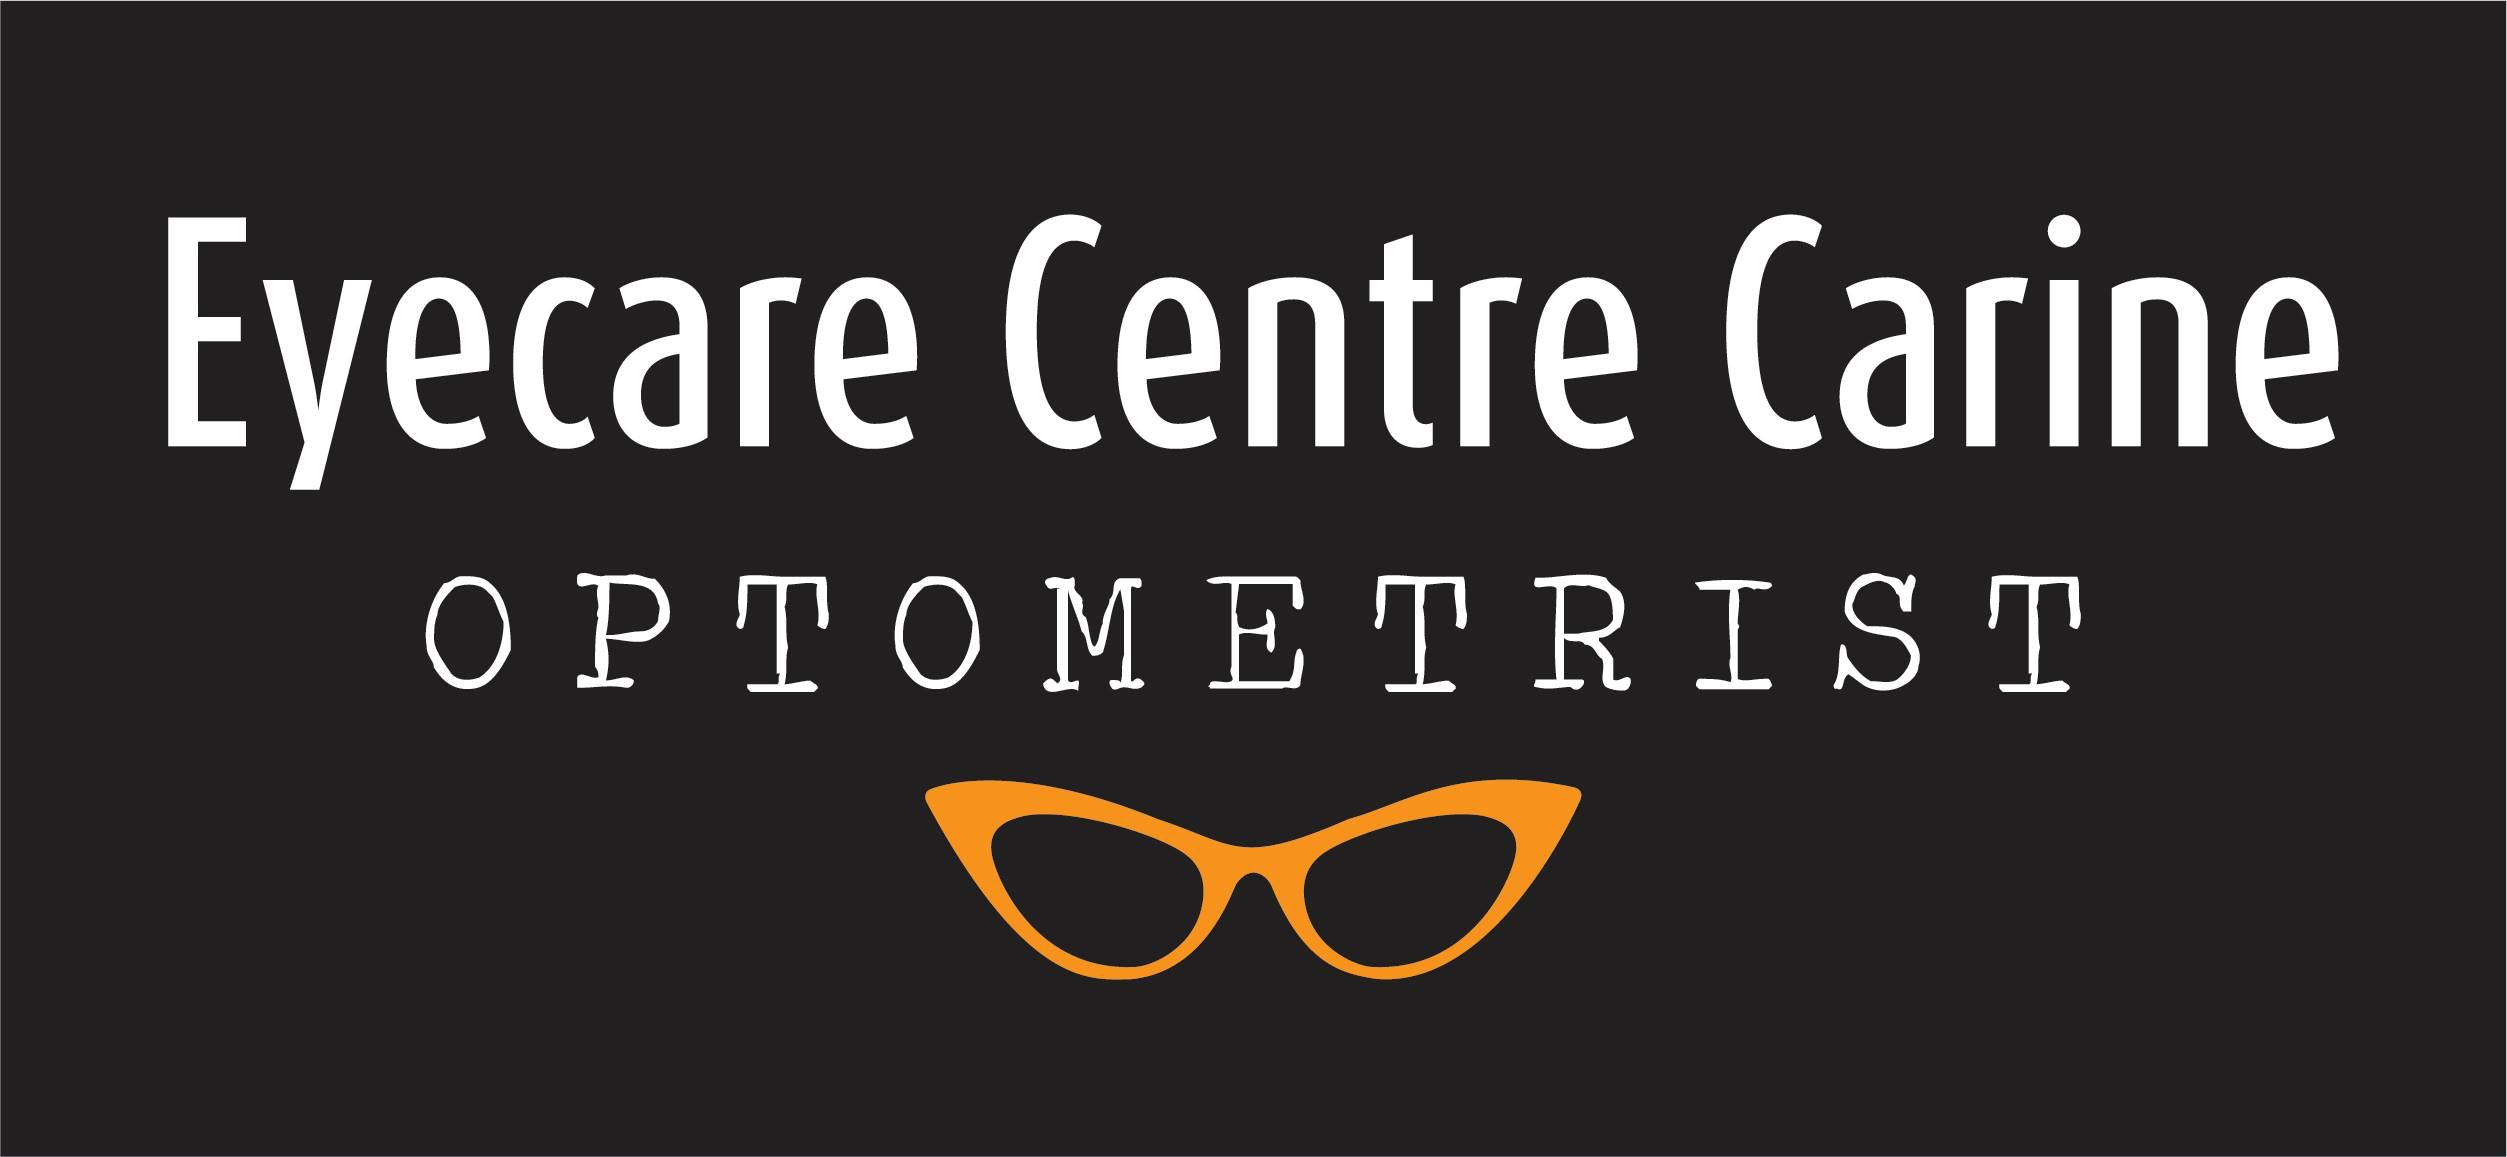 logo for Eyecare Centres in Carine Glades Optometrists